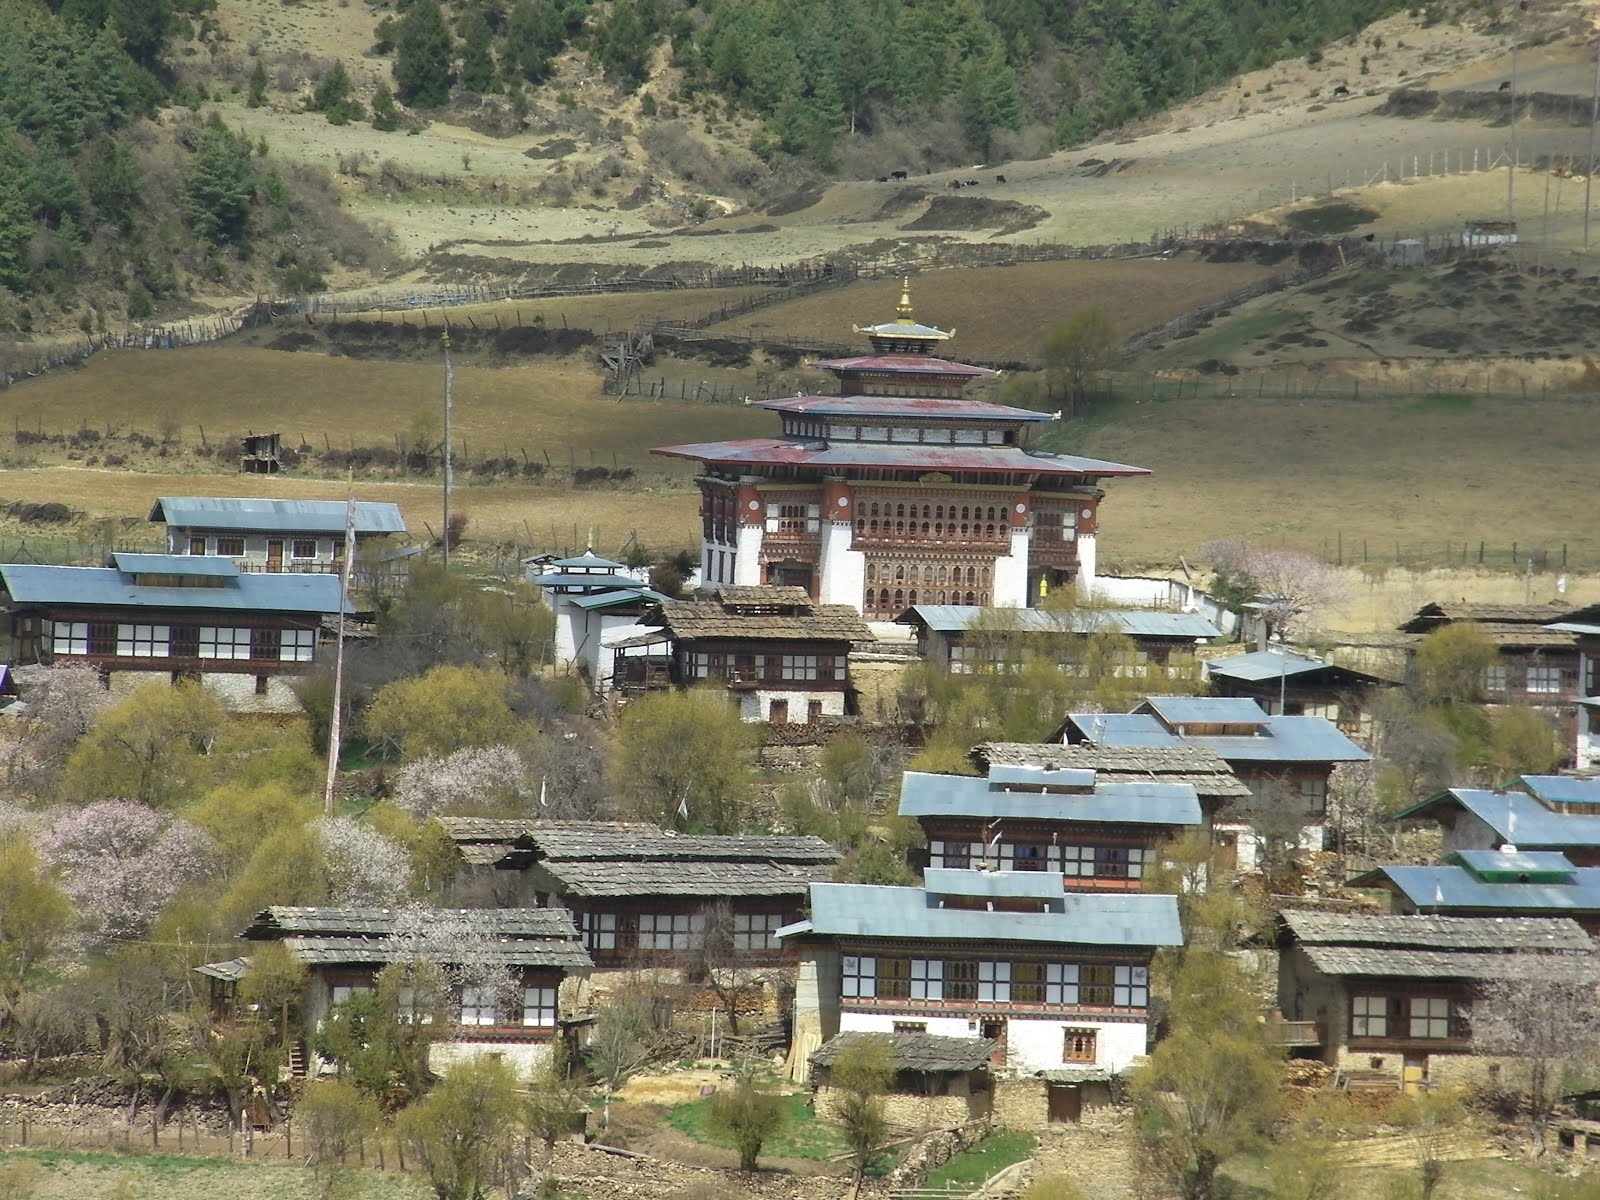 Dilgo Khyentse Rinpoche's Residence Memorial House Upper Paro Valley, Folkways Institute: BHUTAN: Hiking the Dragon Kingdom East (2016)